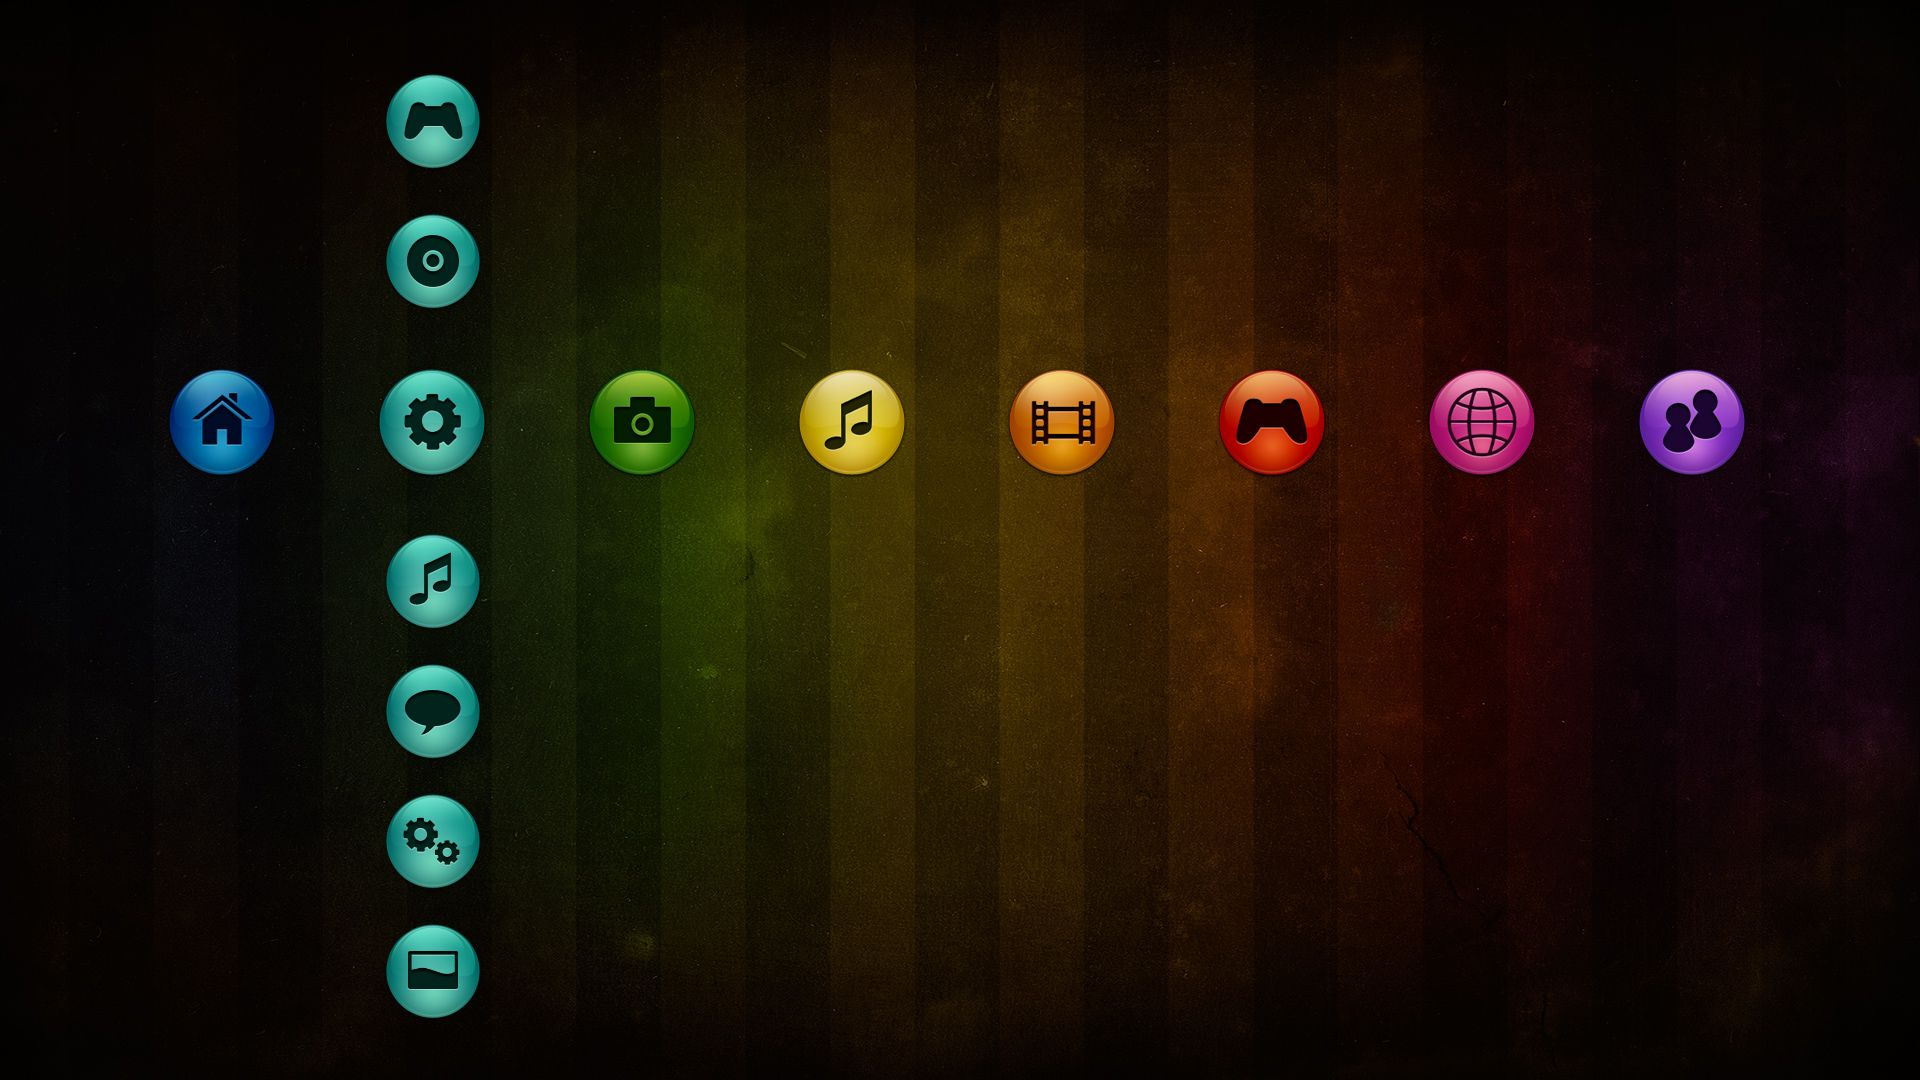 Awesome Ps3 Themes In 2020 Wallpaper Theme Color